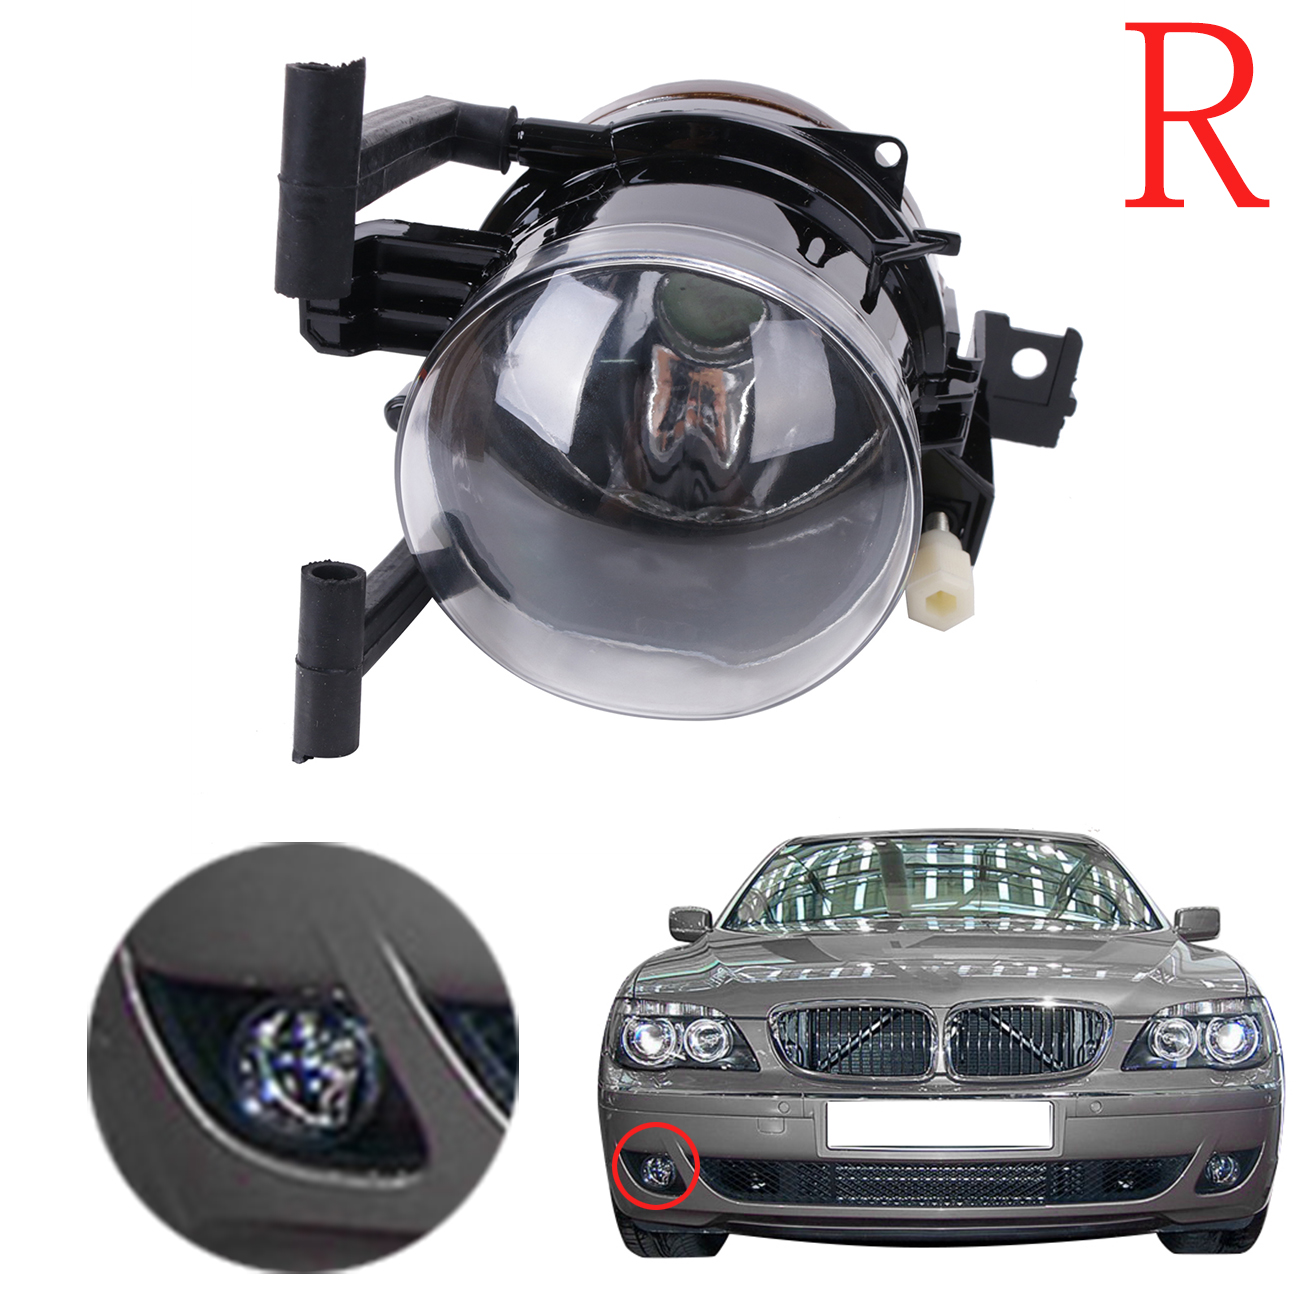 Auto Front Bumper Driving Fog Light Lamp For BMW E65 E66 Facelift 7 Series 745i 750i 760i / Li 2005 - 2008 Right Side #W082-R 1 pc rh right side front fog light bumper driving lamp with cover for mazda 6 2003 2005